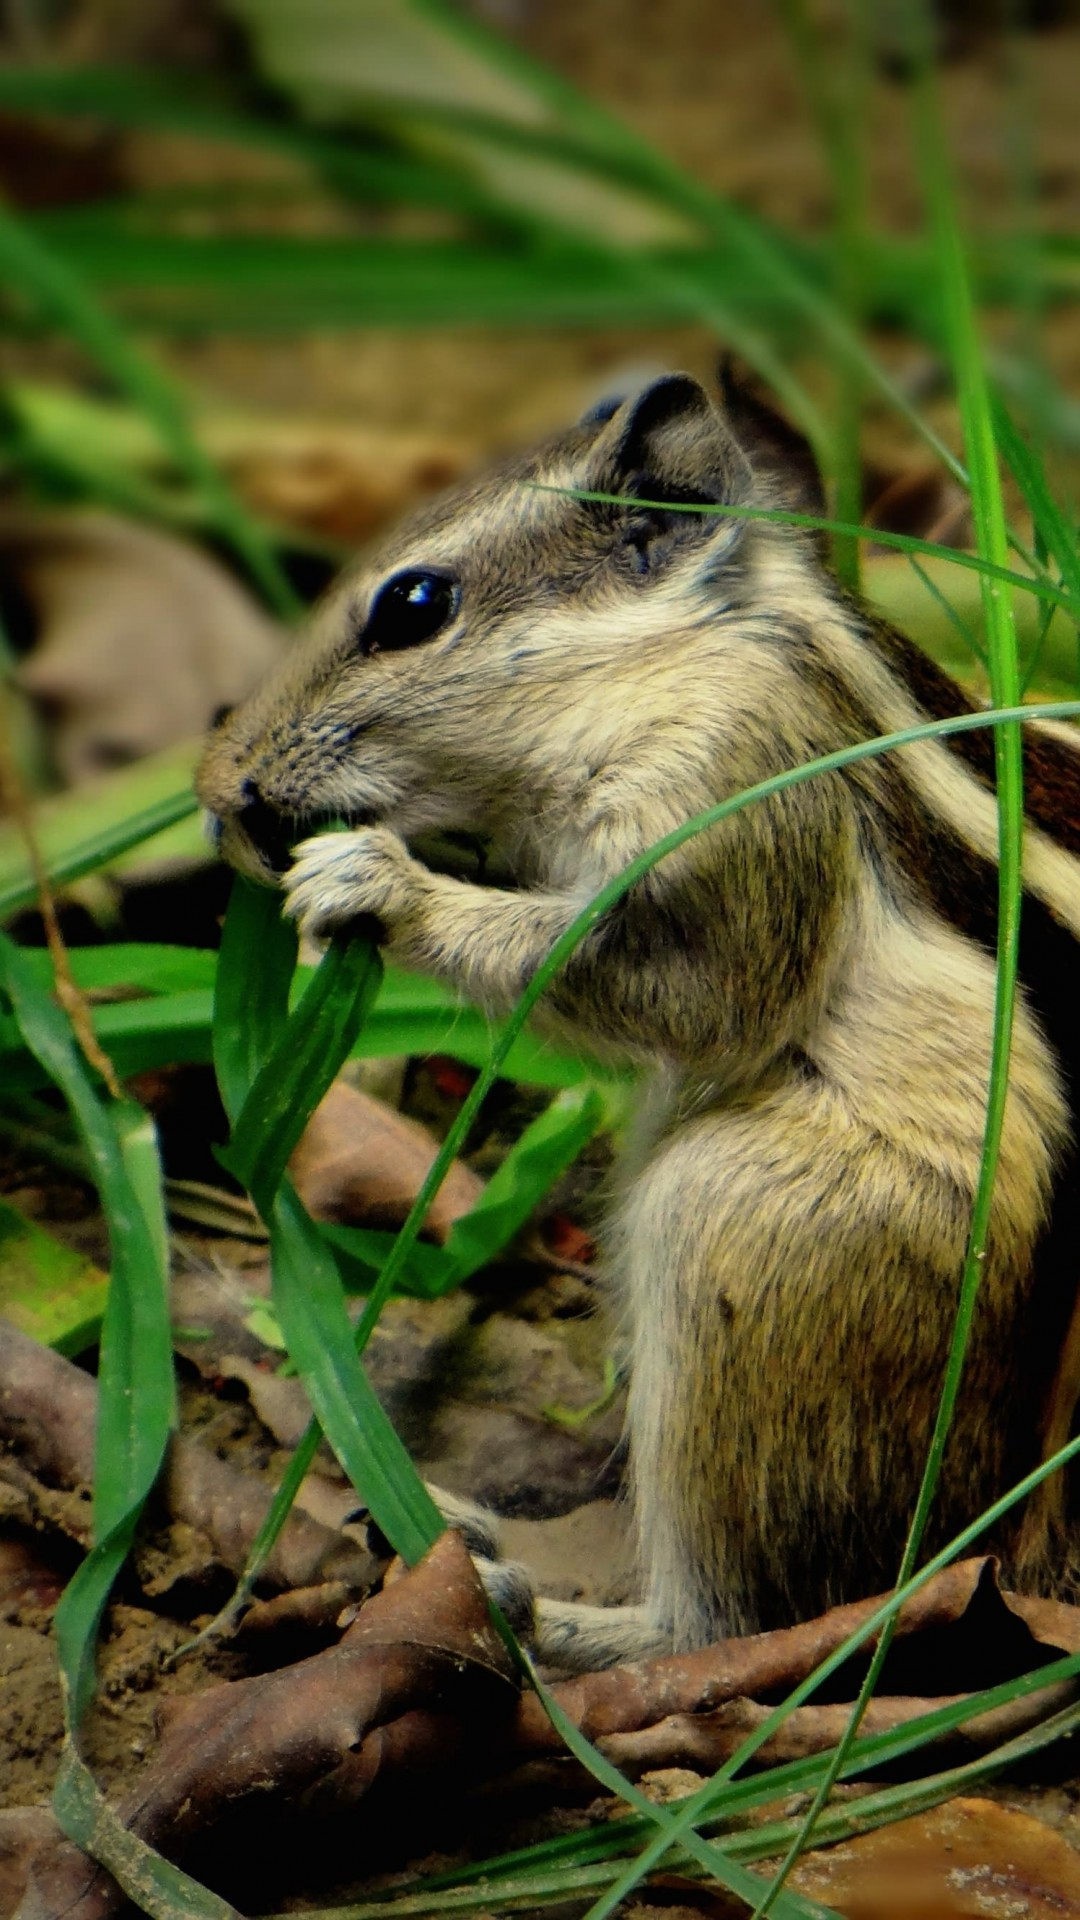 Chipmunk In The Grass Wallpaper for SONY Xperia Z3